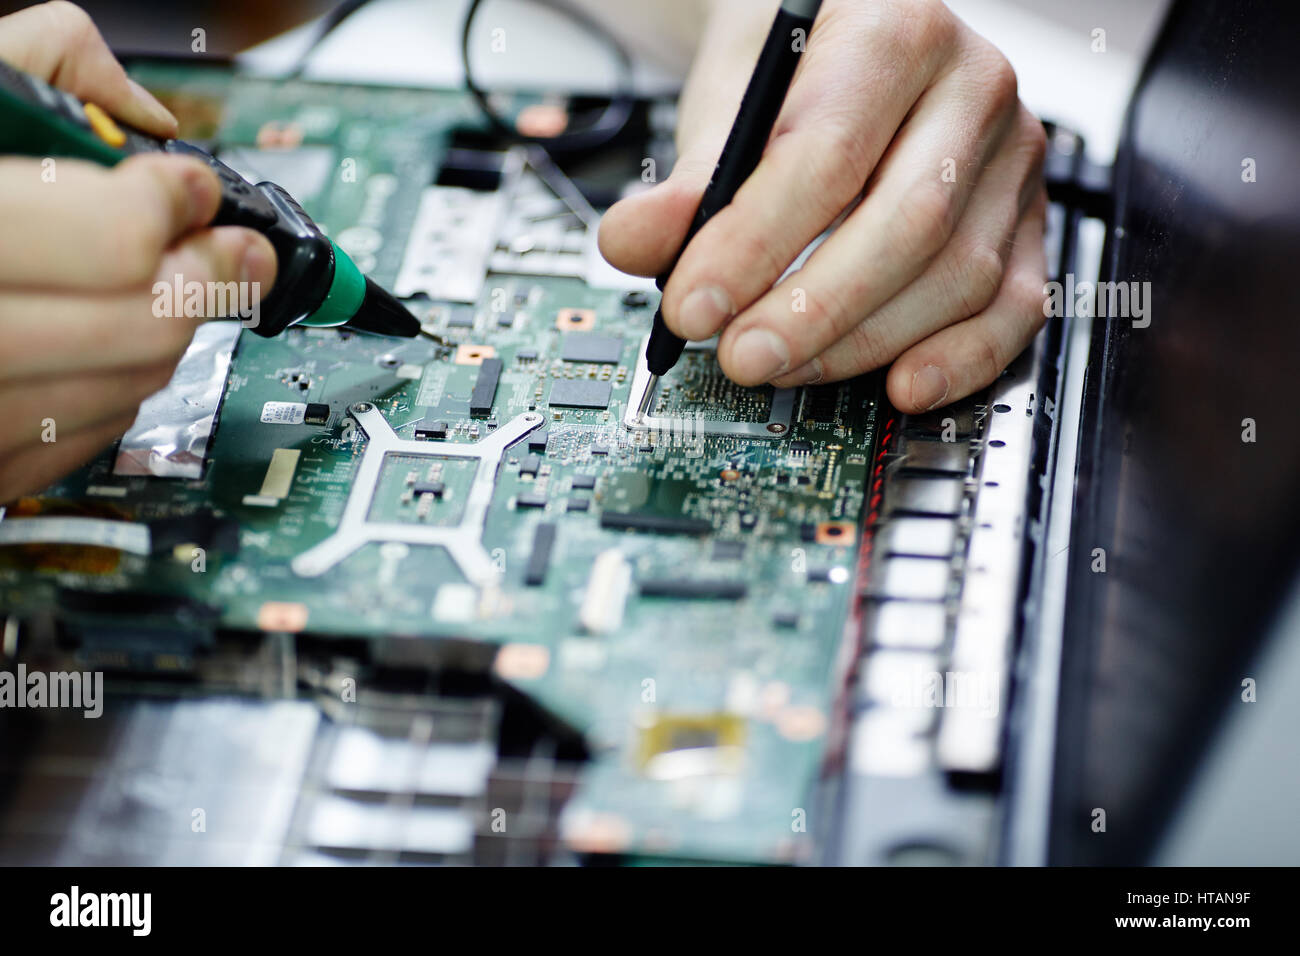 Laptop Main Components Stock Photos Testing Circuit Board Closeup Shot Of Male Hands Electric Current In Disassembled Using Multimeter